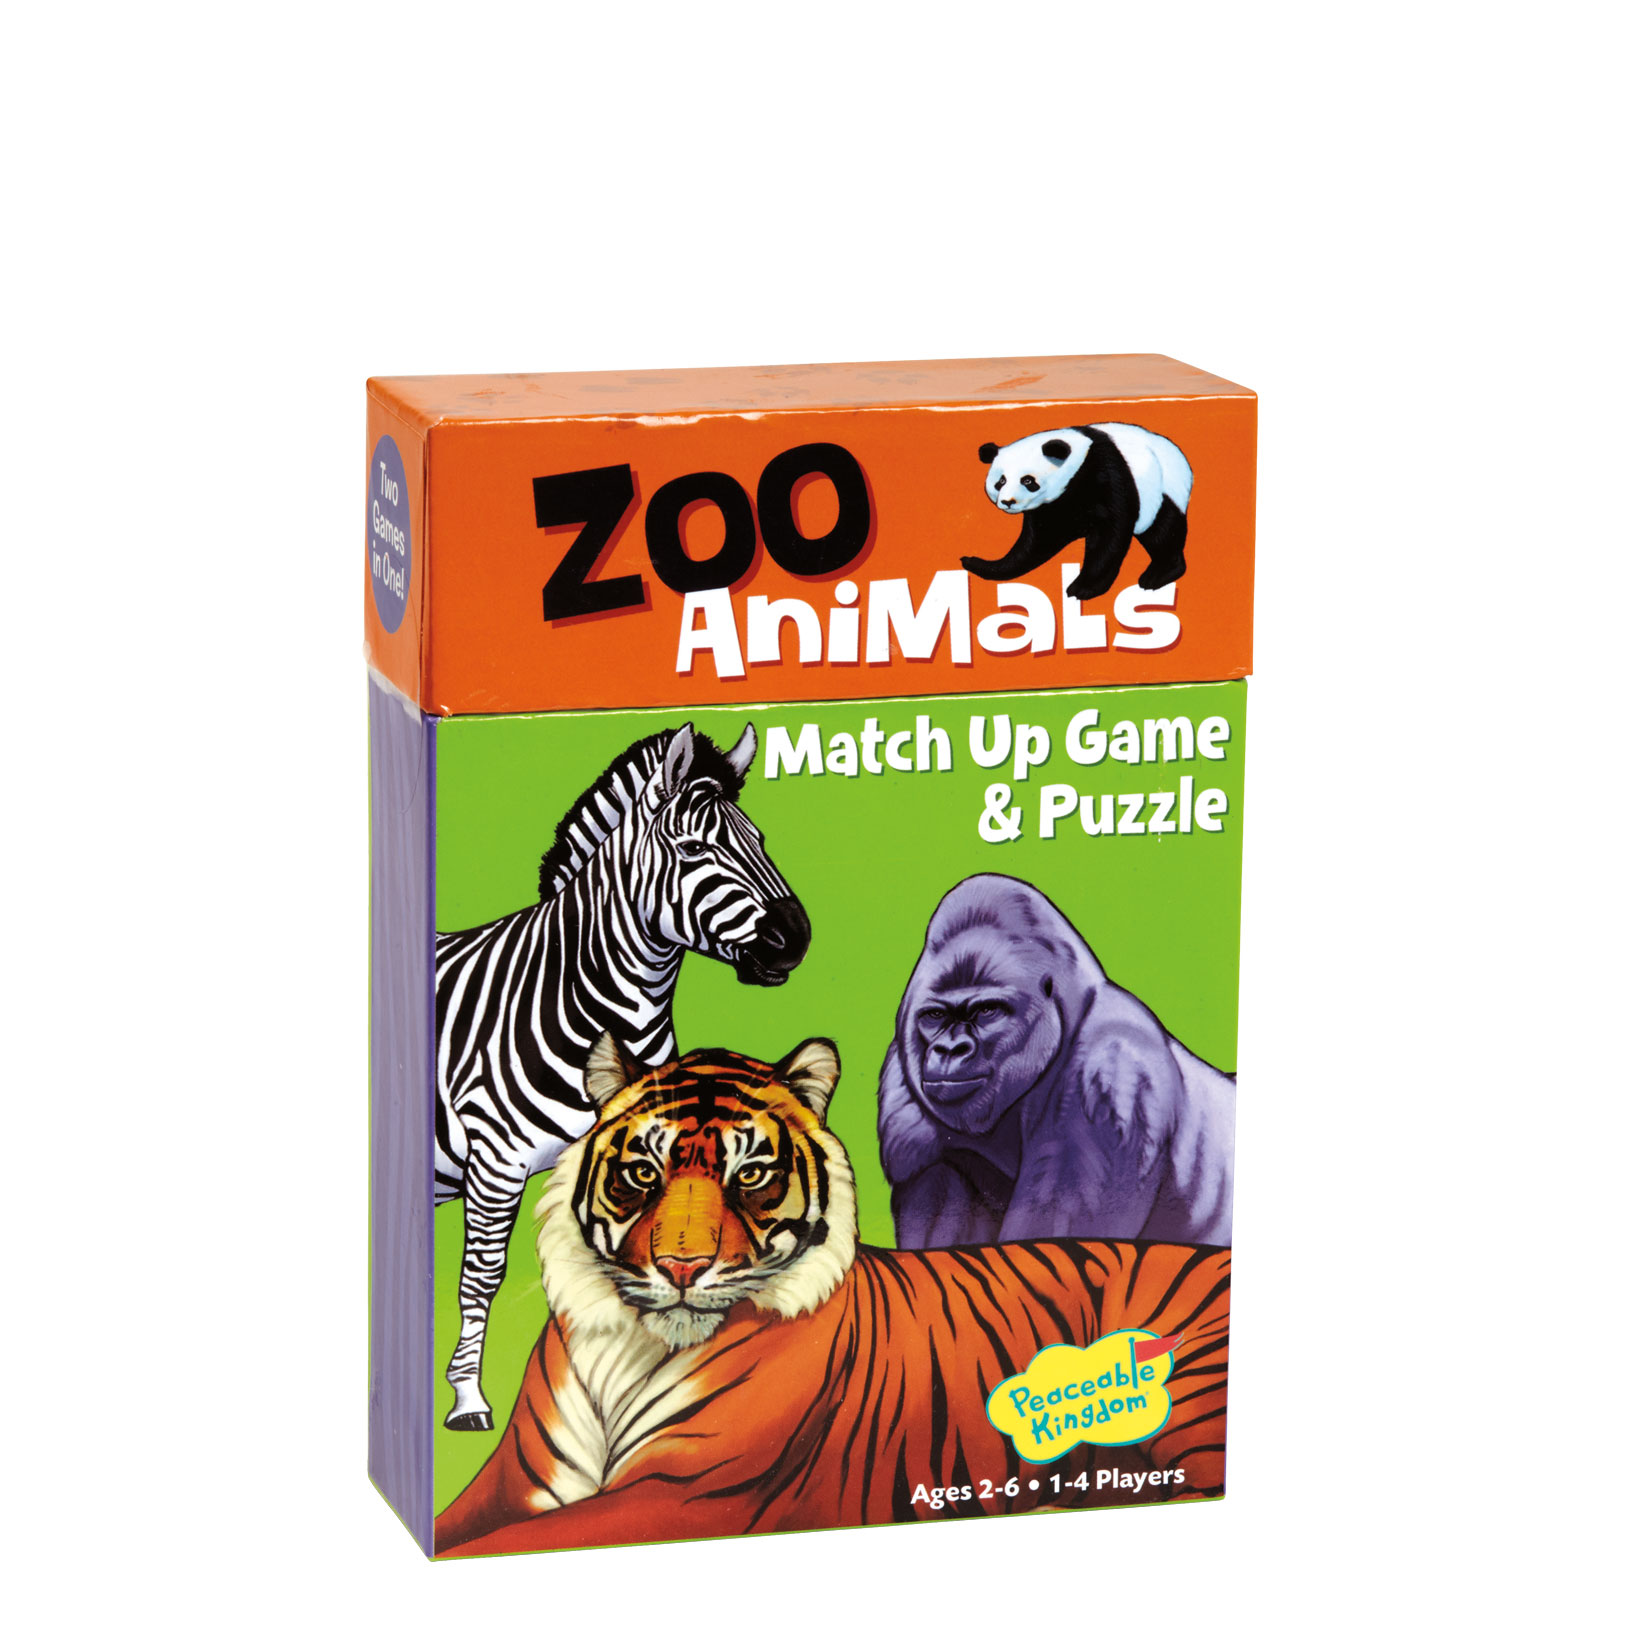 Match Up Game & Puzzle, Learn to count -- Zoo Animals by Peaceable Kingdom